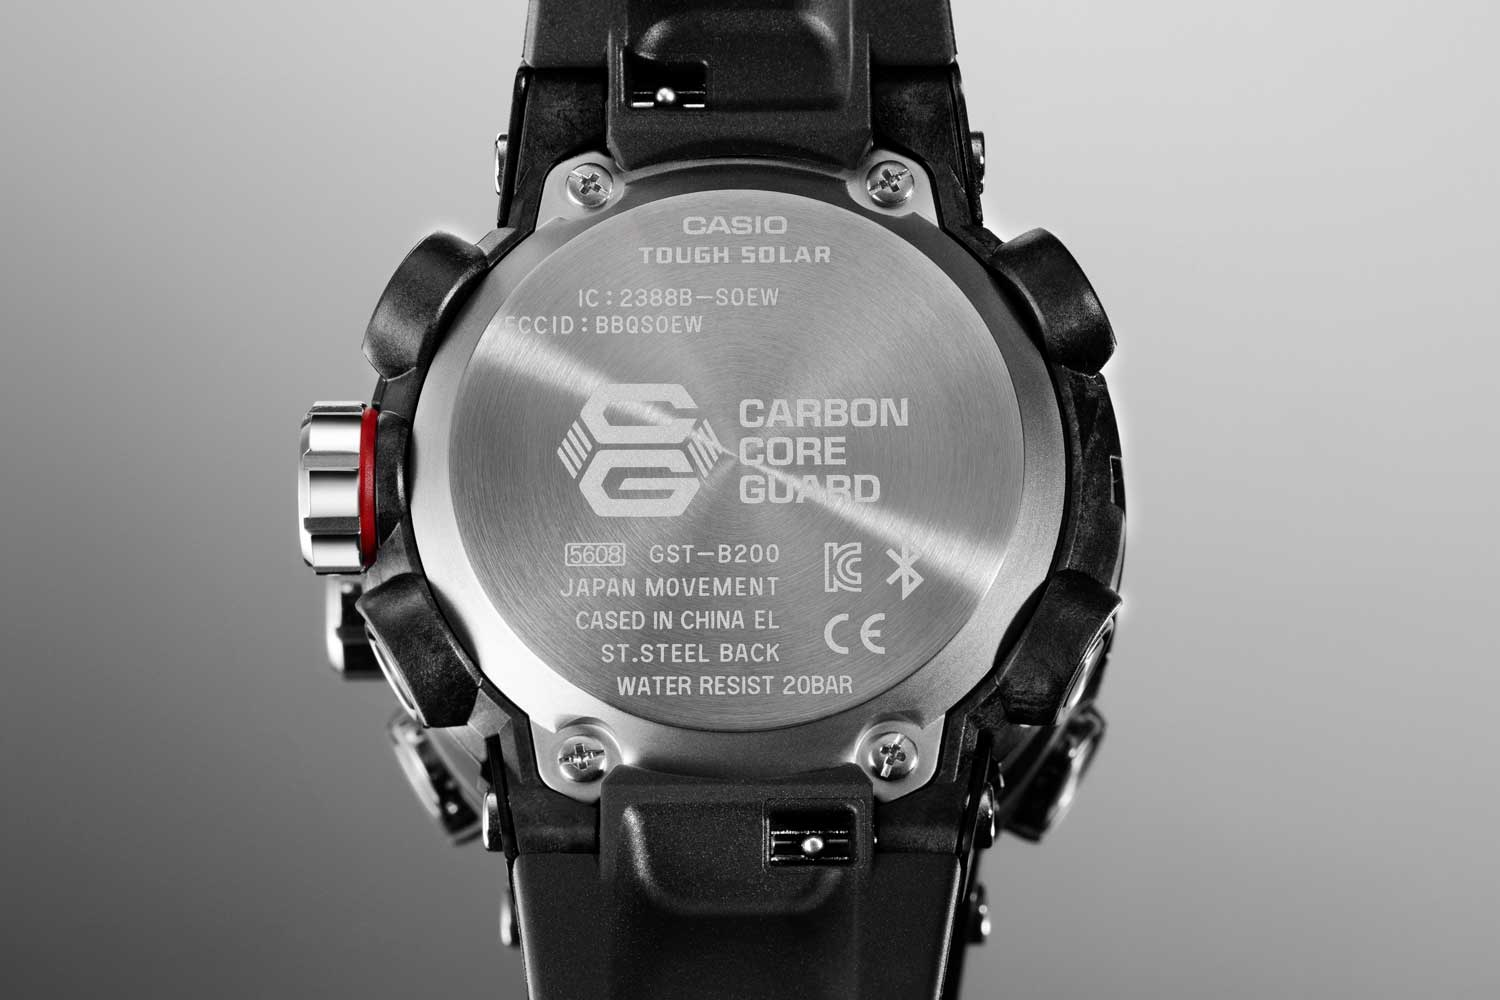 Caseback on the Casio G-Steel Carbon Core Guard GST-B200 series of watches (Image © Revolution)